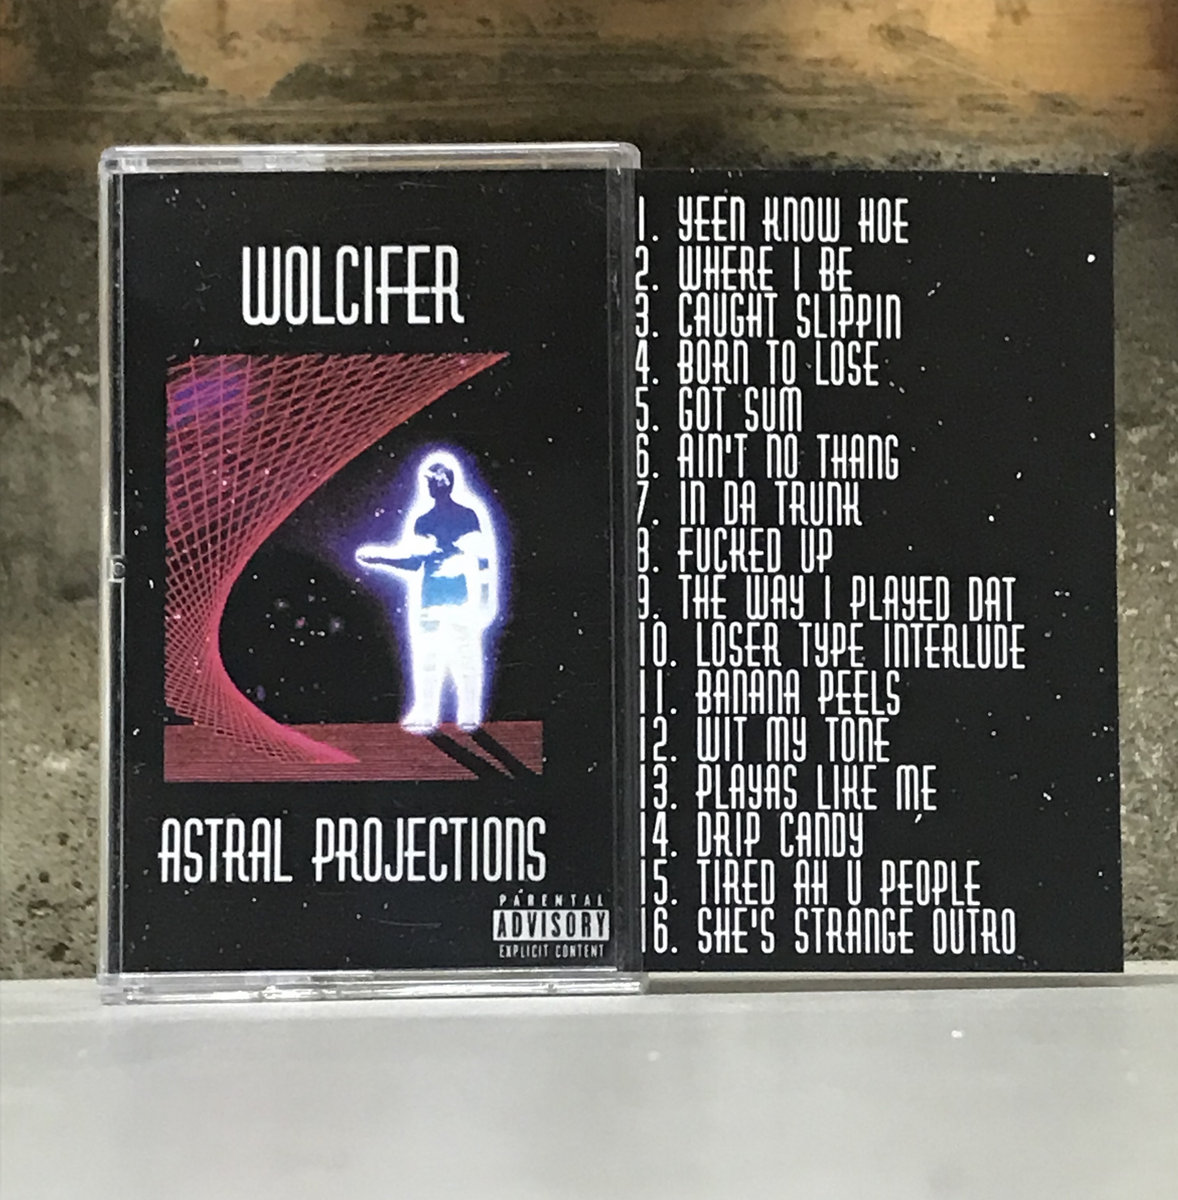 astral projection discography tpb